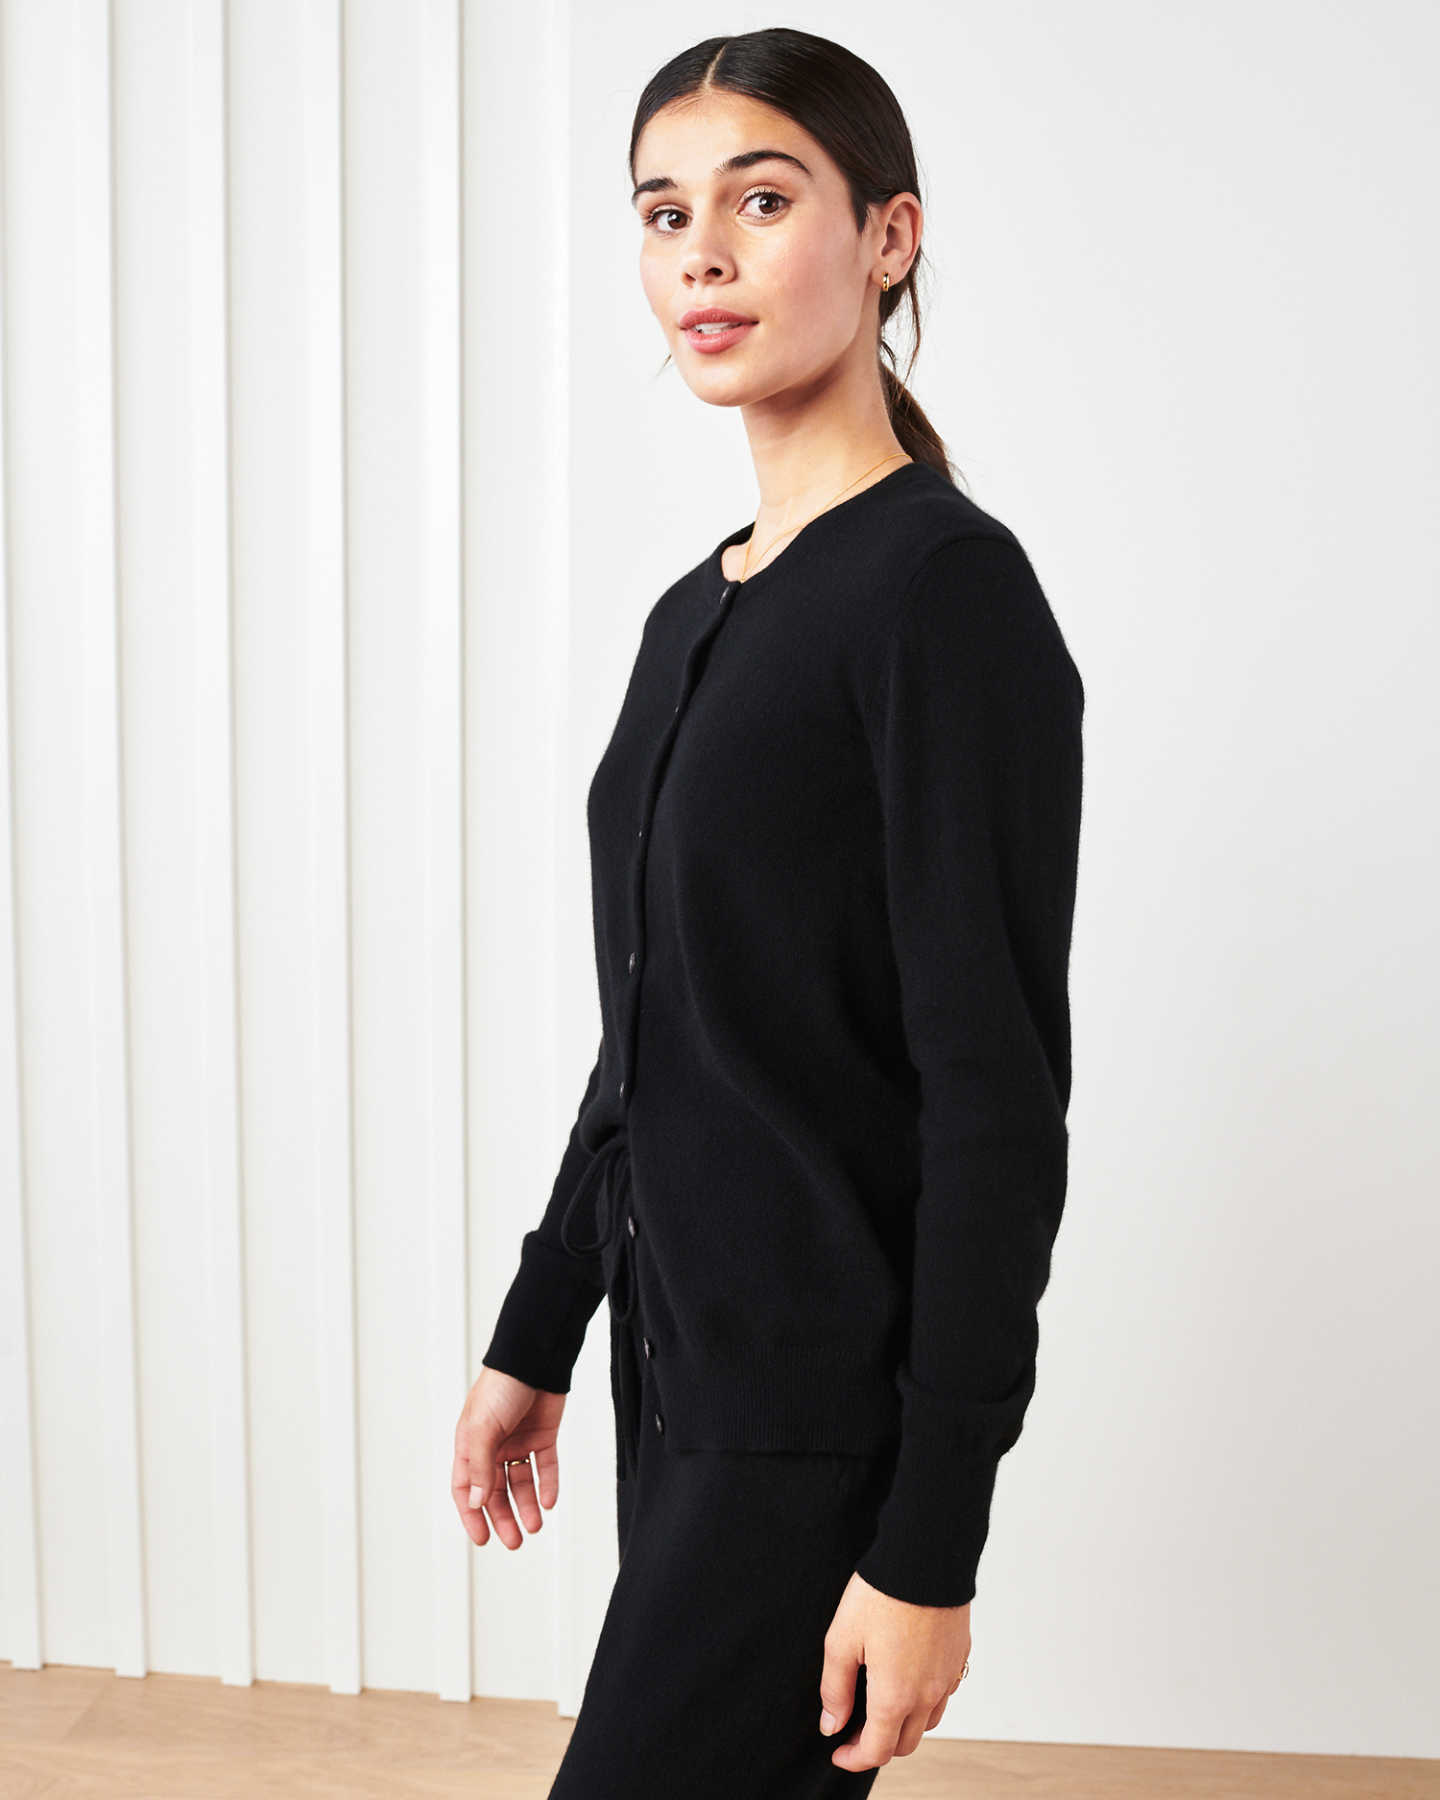 Woman wearing black cashmere cardigan sweater and black cashmere sweatpants thinking